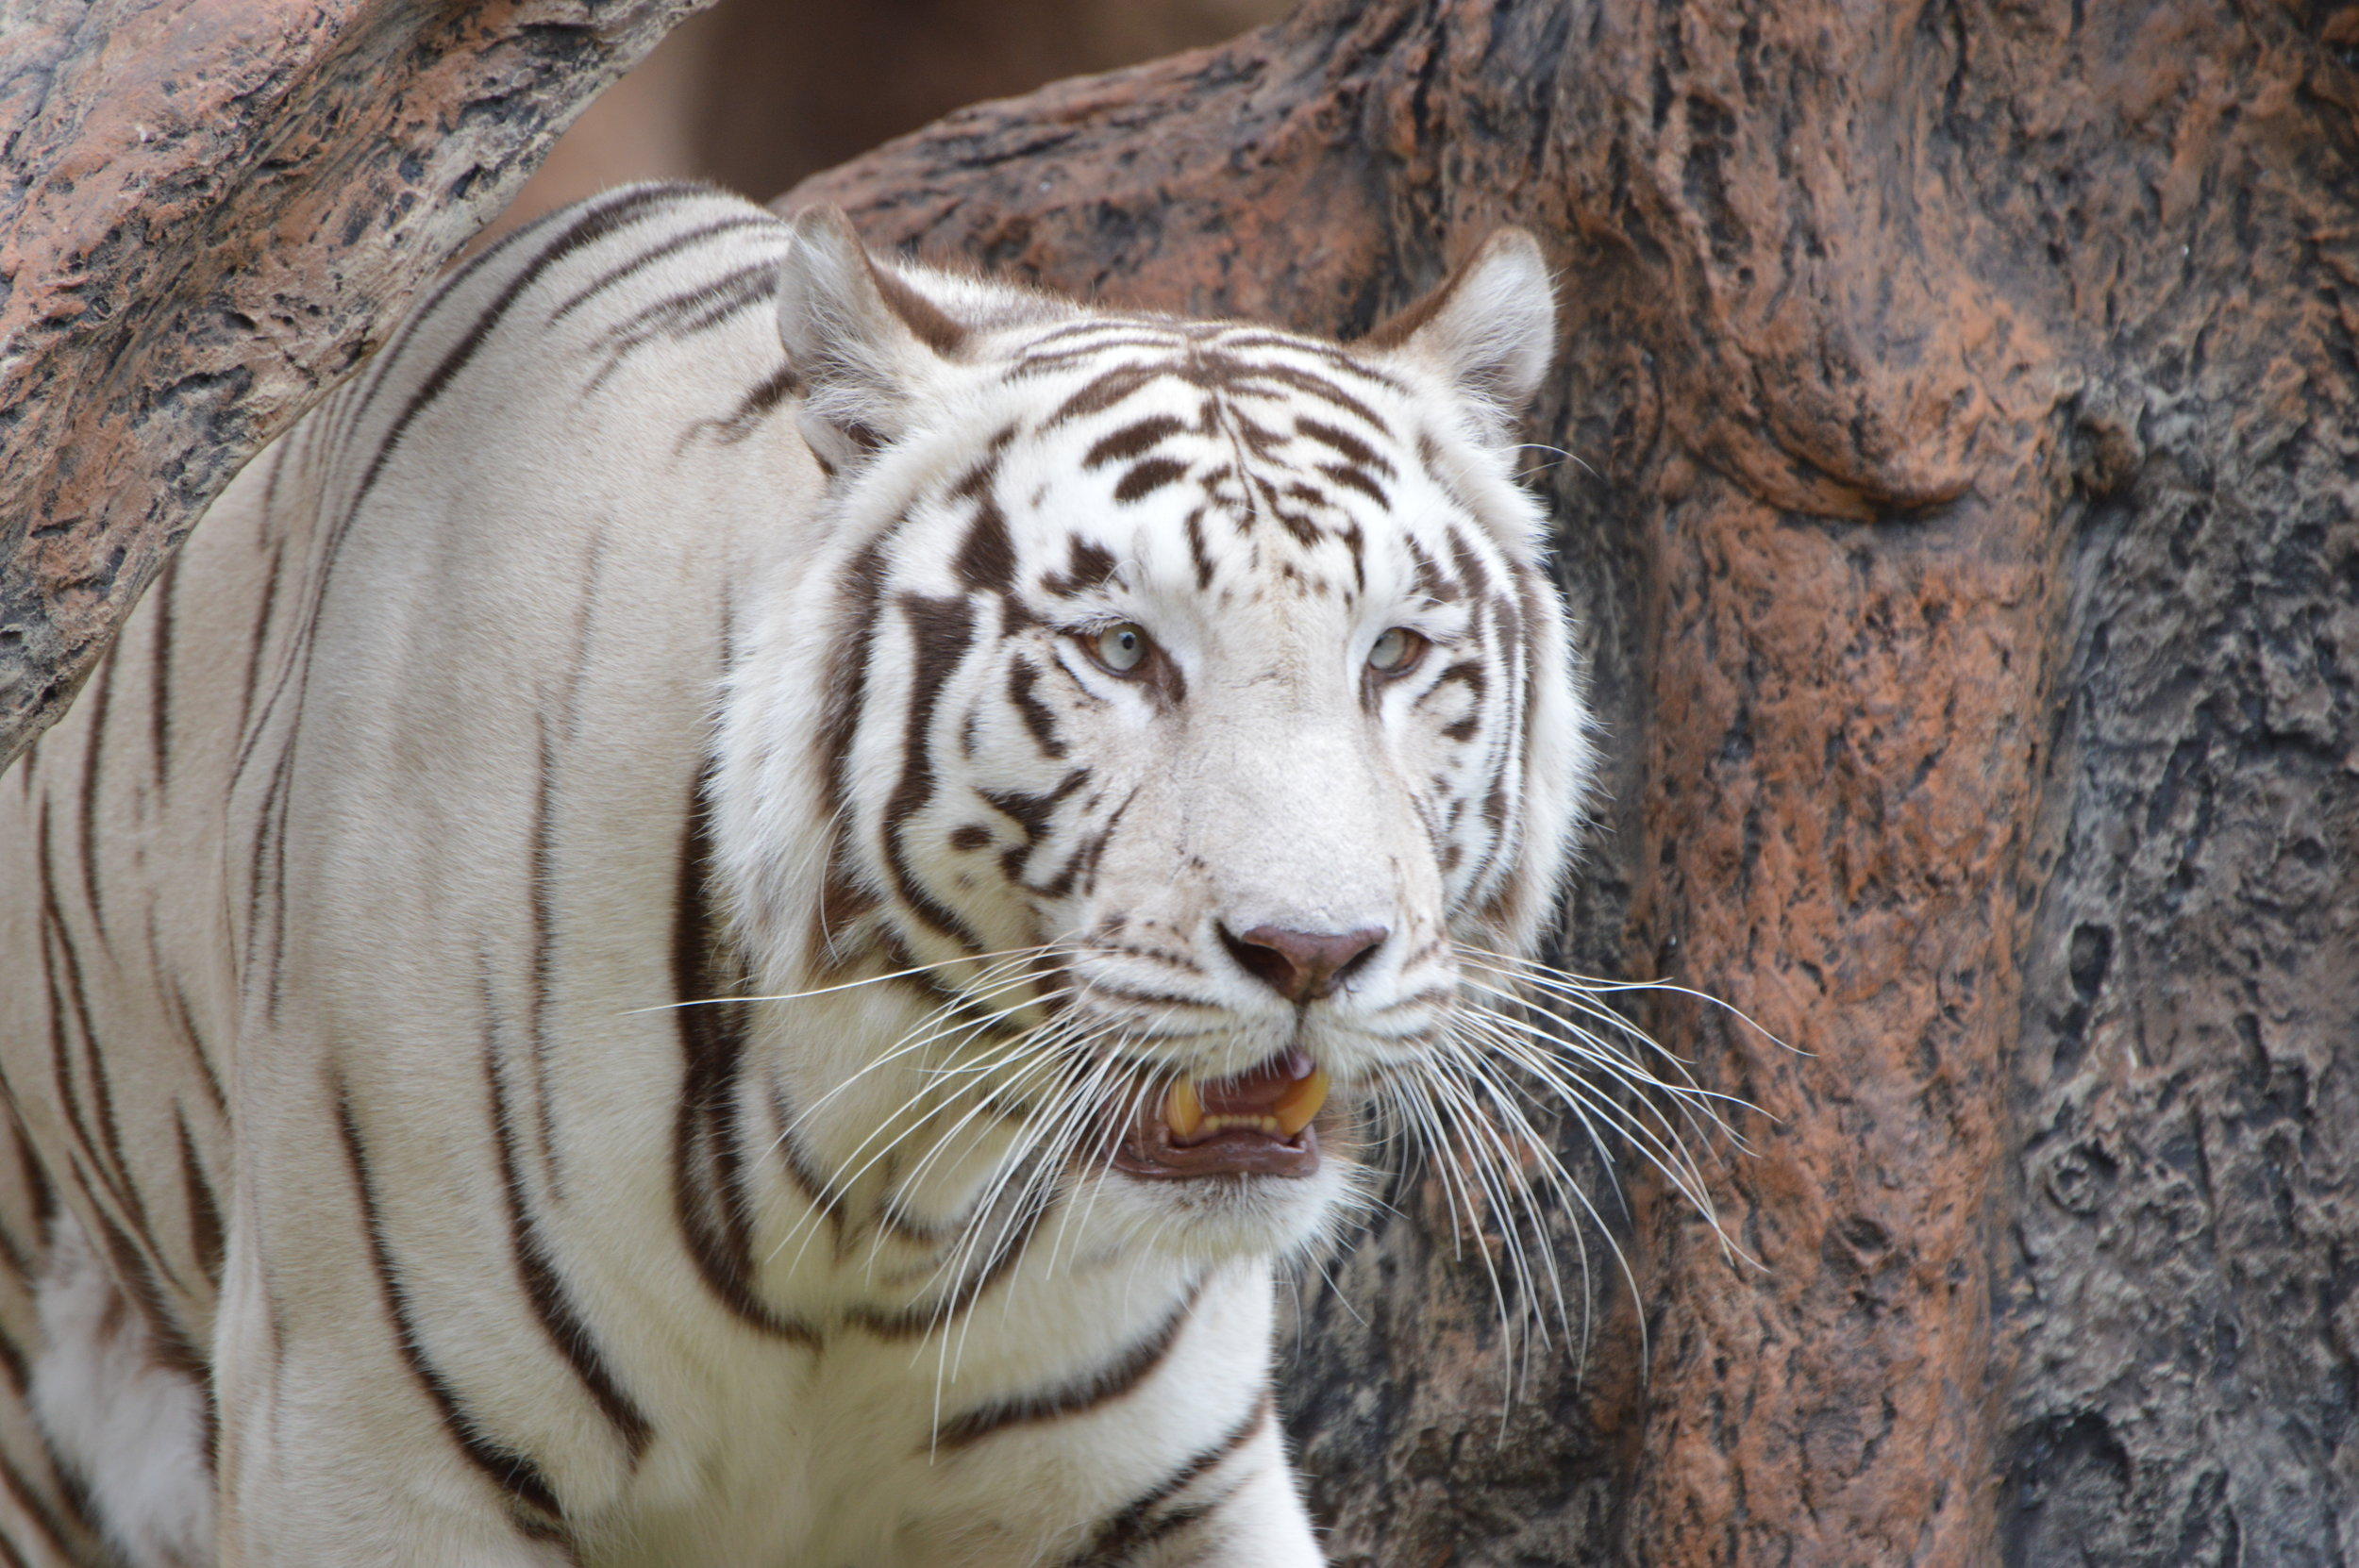 A white Tiger at Loro Parque